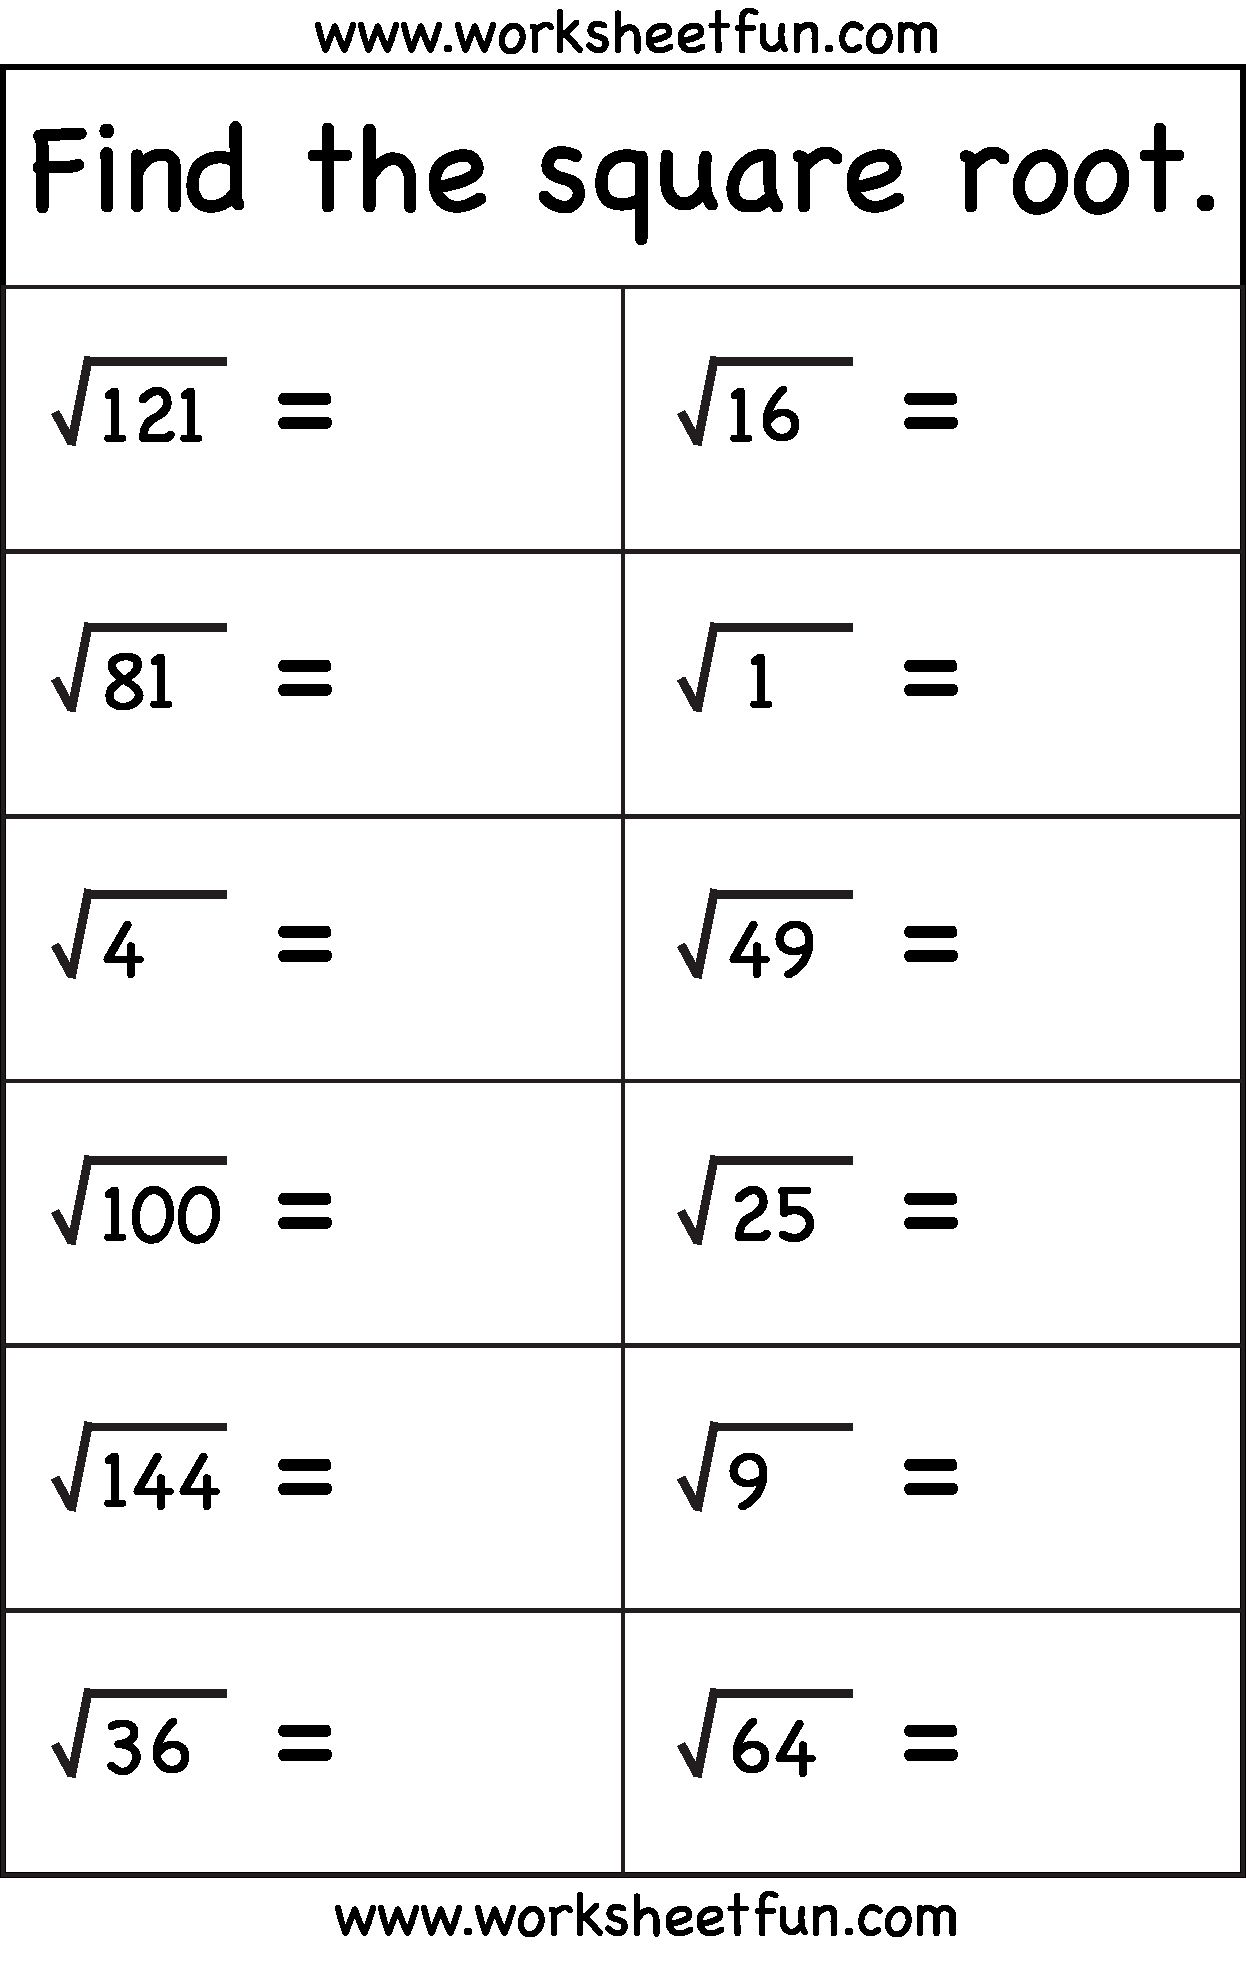 50 Squares And Square Roots Worksheet In